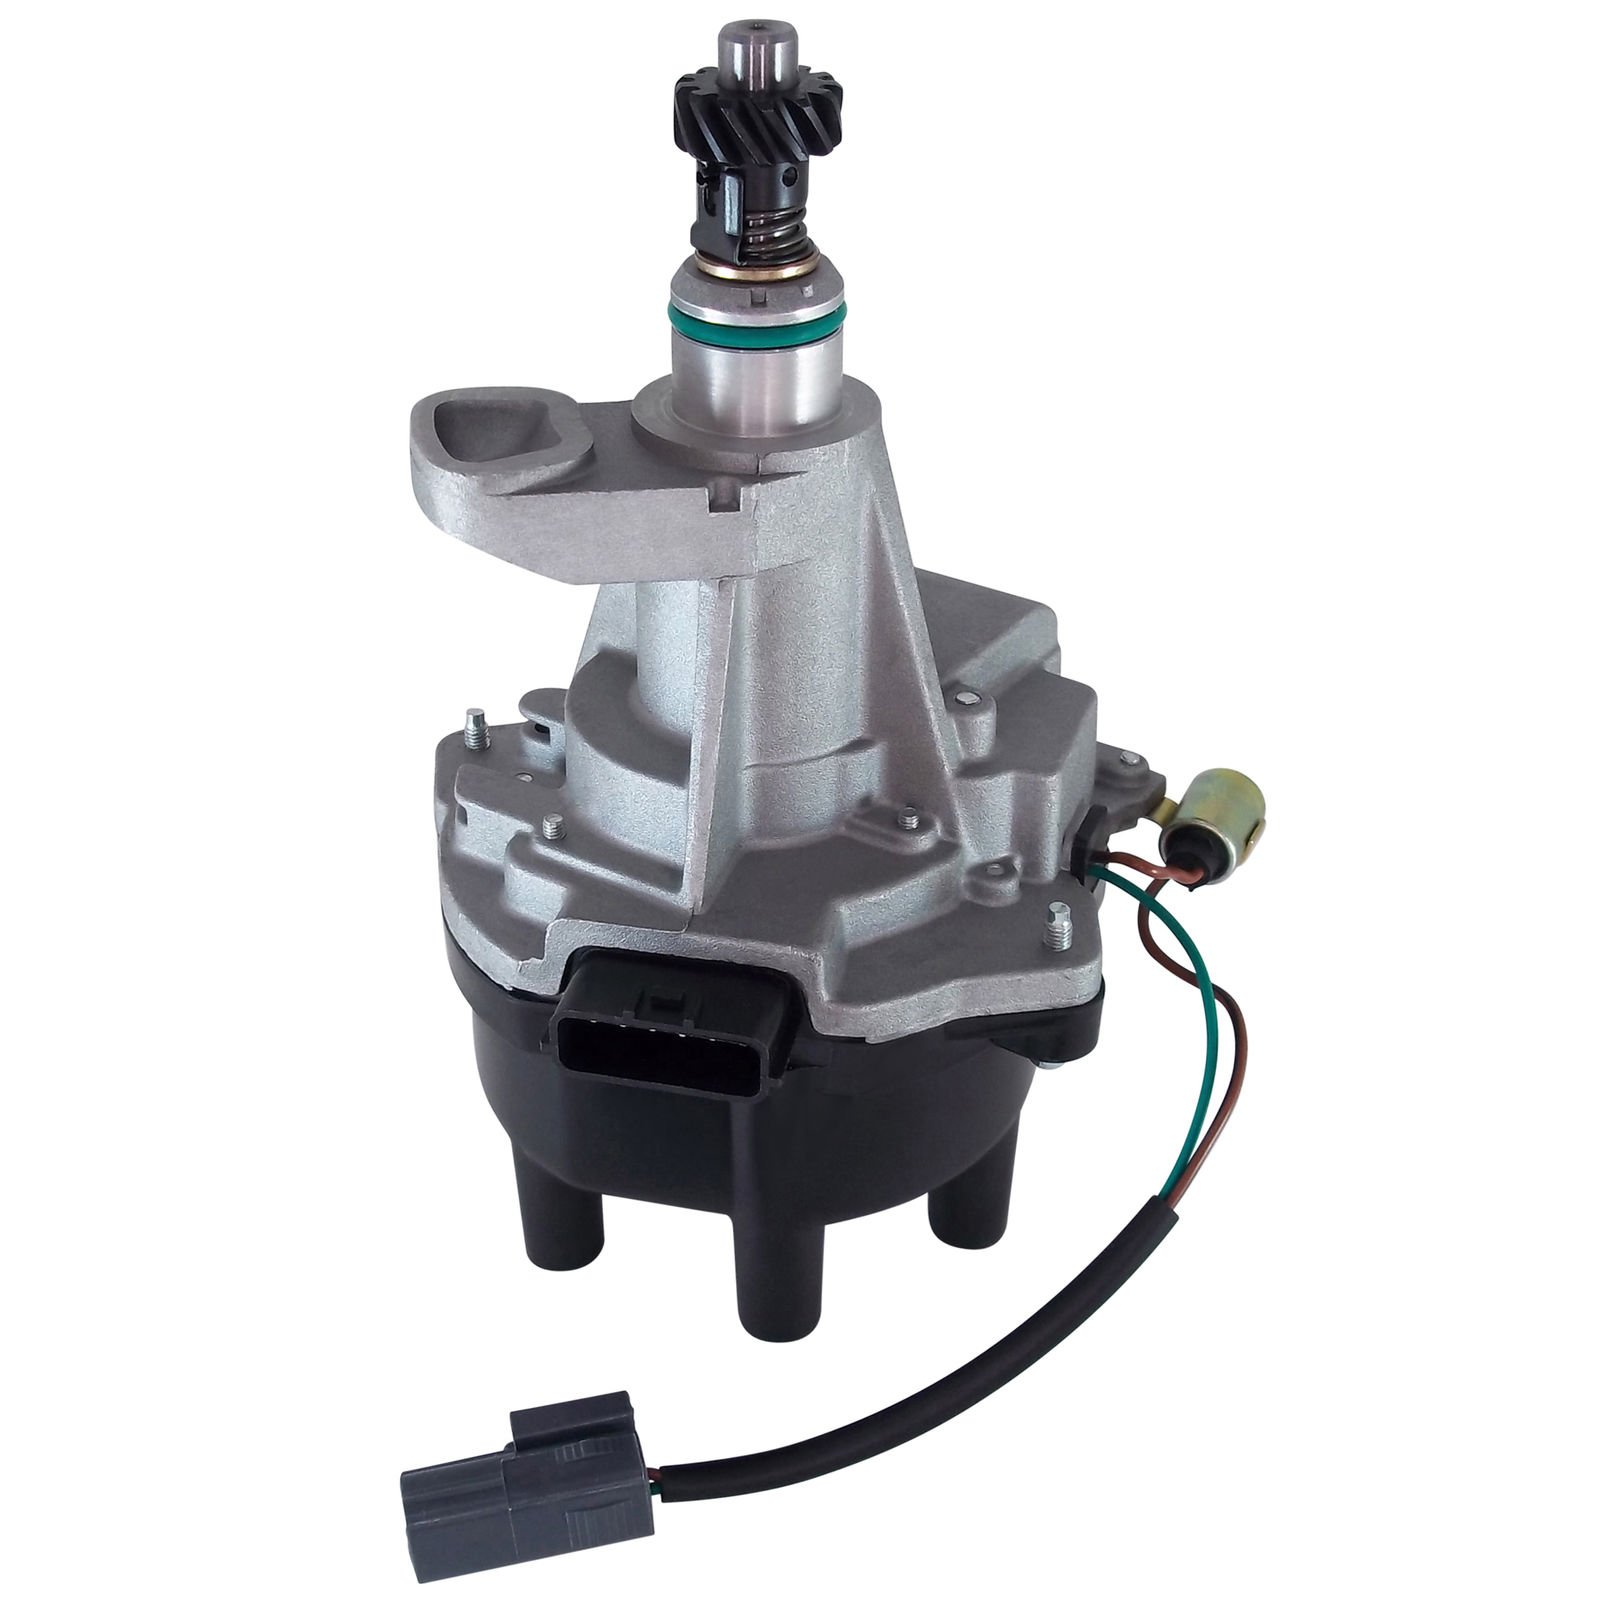 Ignition Distributor for Pathfinder Frontier Xterra Quest 3.3L fits 221001W601 / 22100-1W601